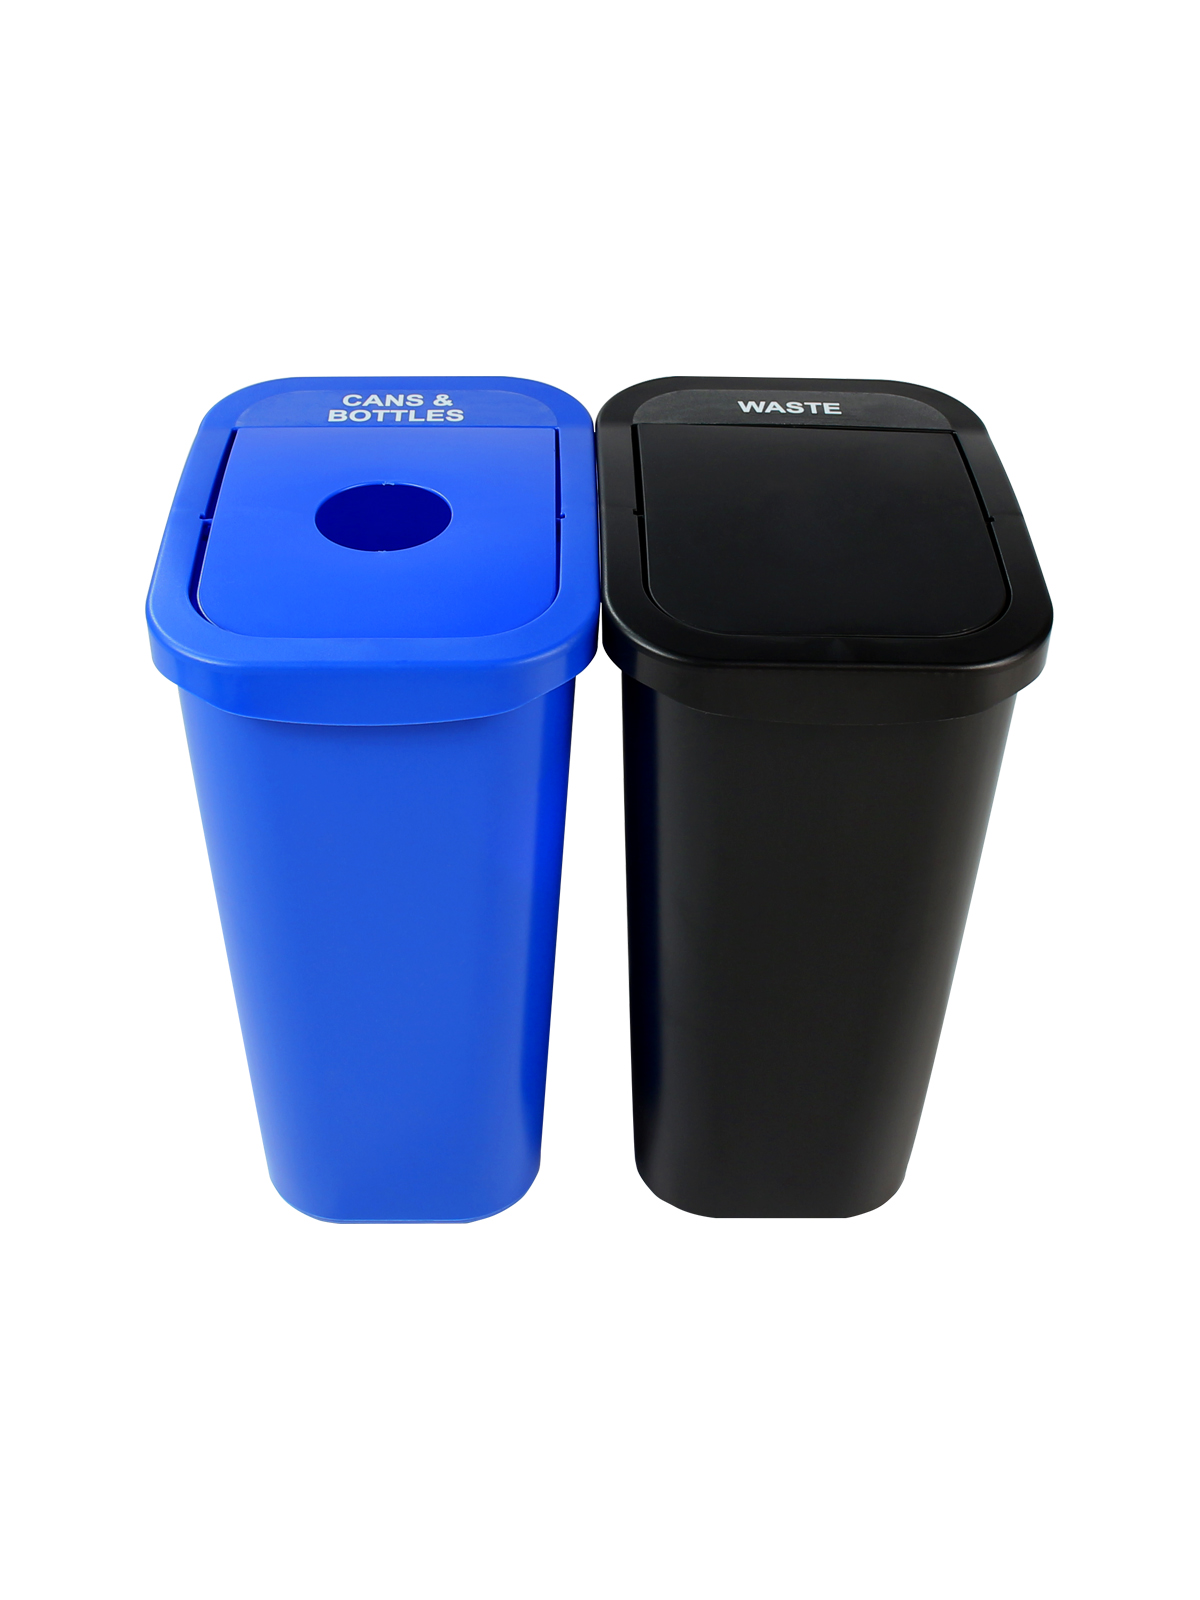 BILLI BOX - DOUBLE 10 G - CIRCLE | SWING - BLUE | BLACK - CANS & BOTTLES | WASTE title=